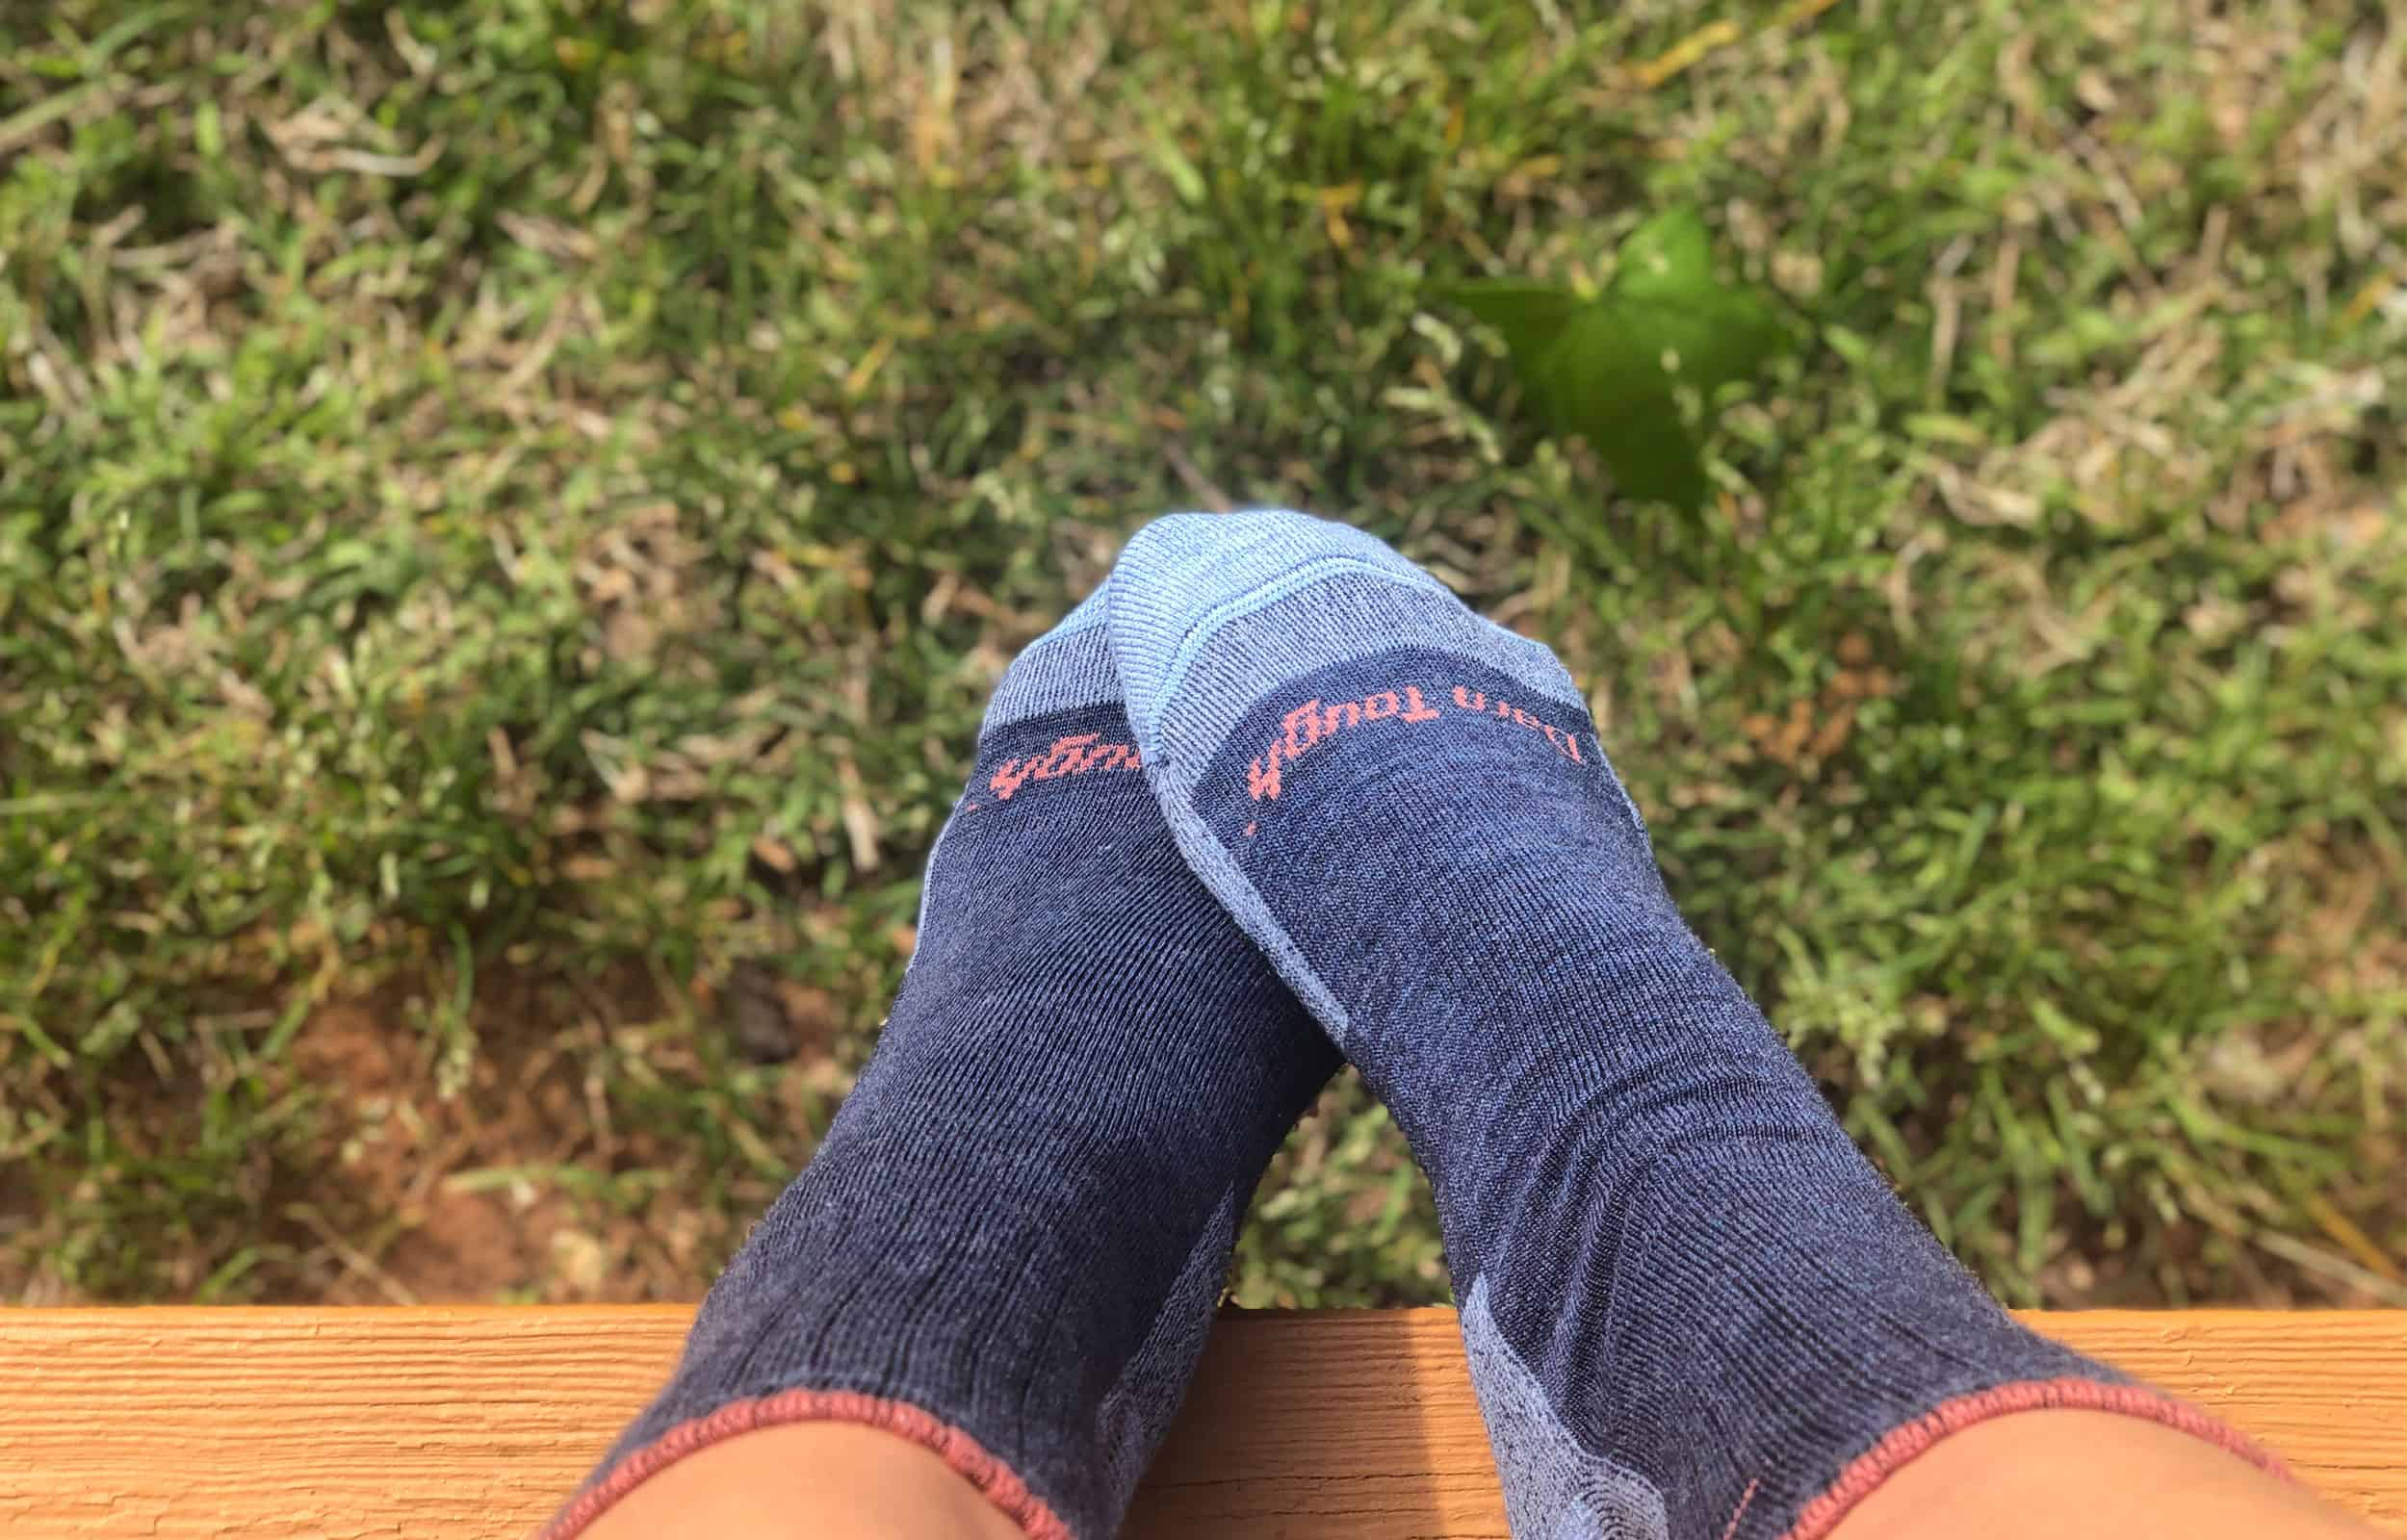 close up view of darn tough blue socks